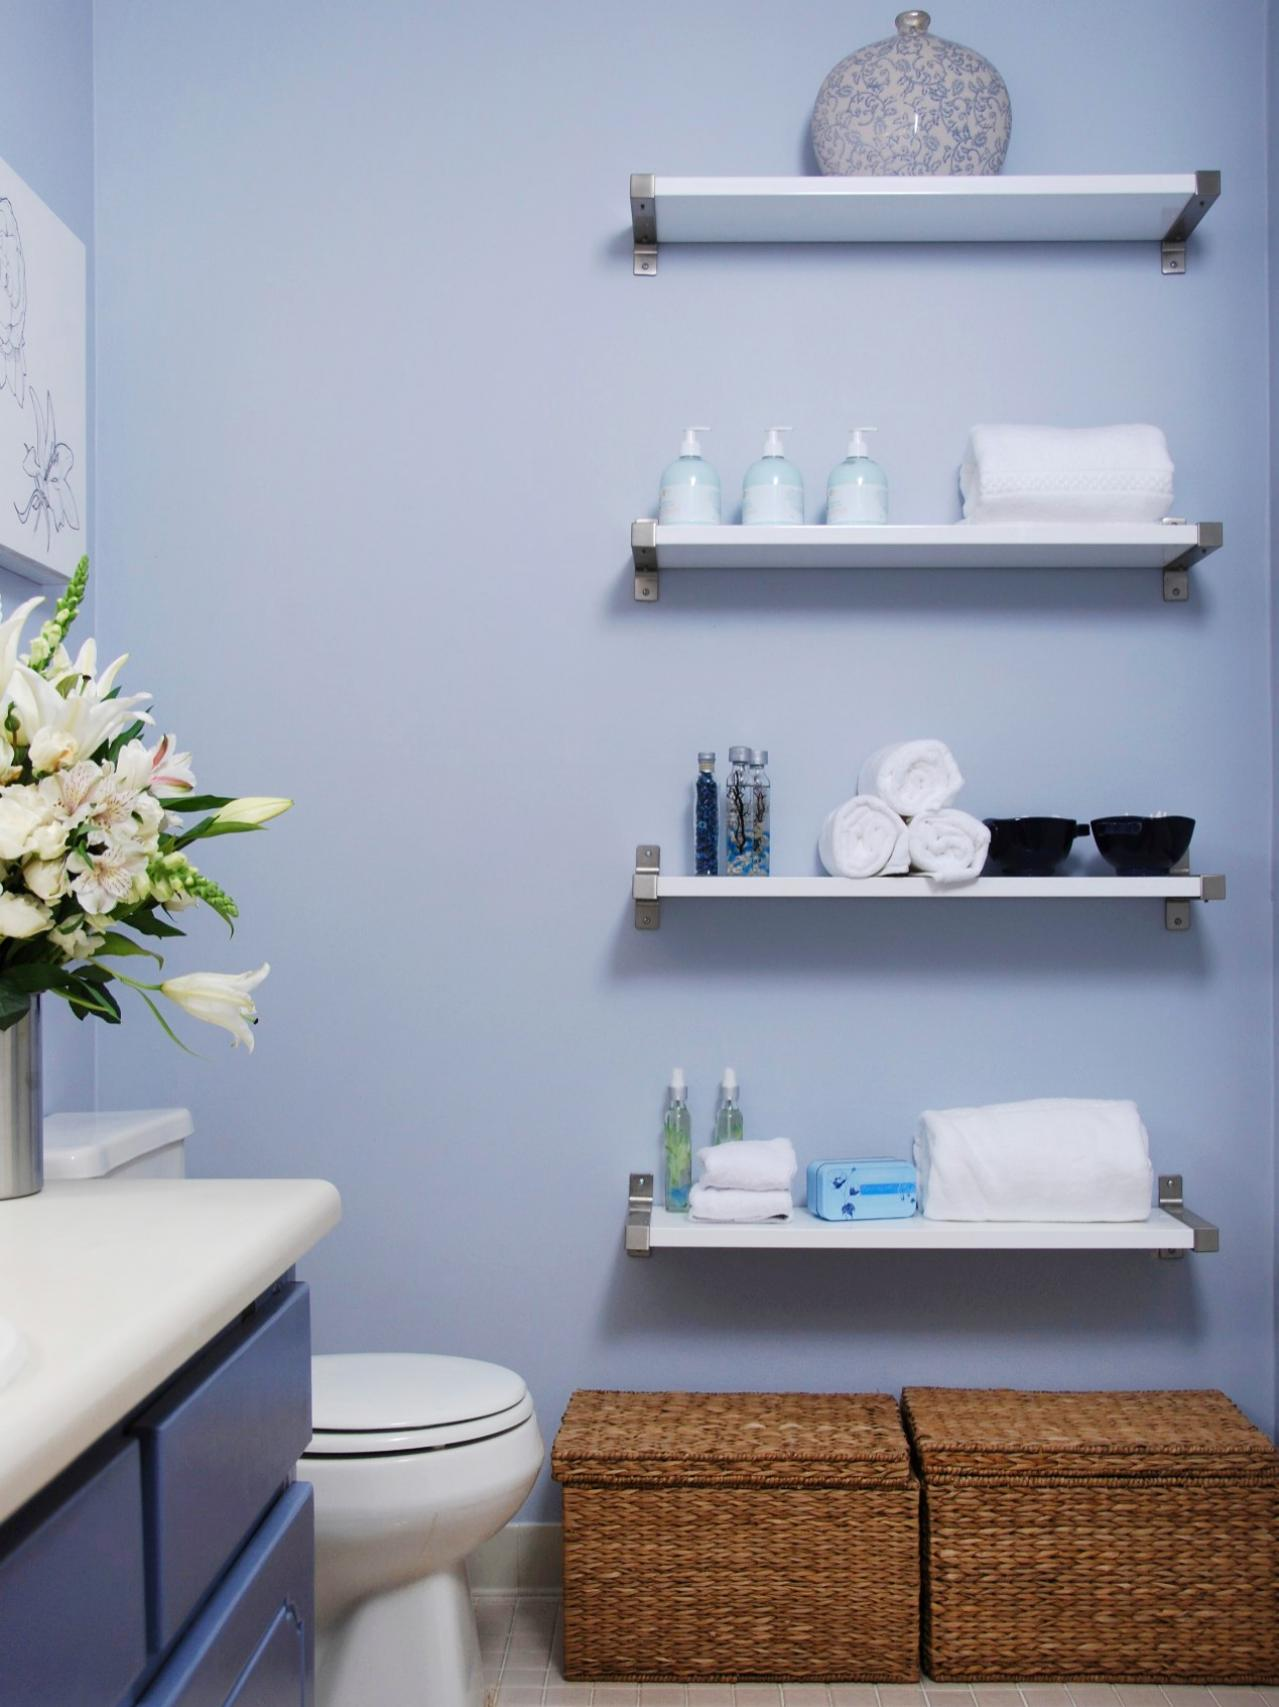 Decorating With Wall Shelves Decorating With Floating Shelves Interior Design Styles